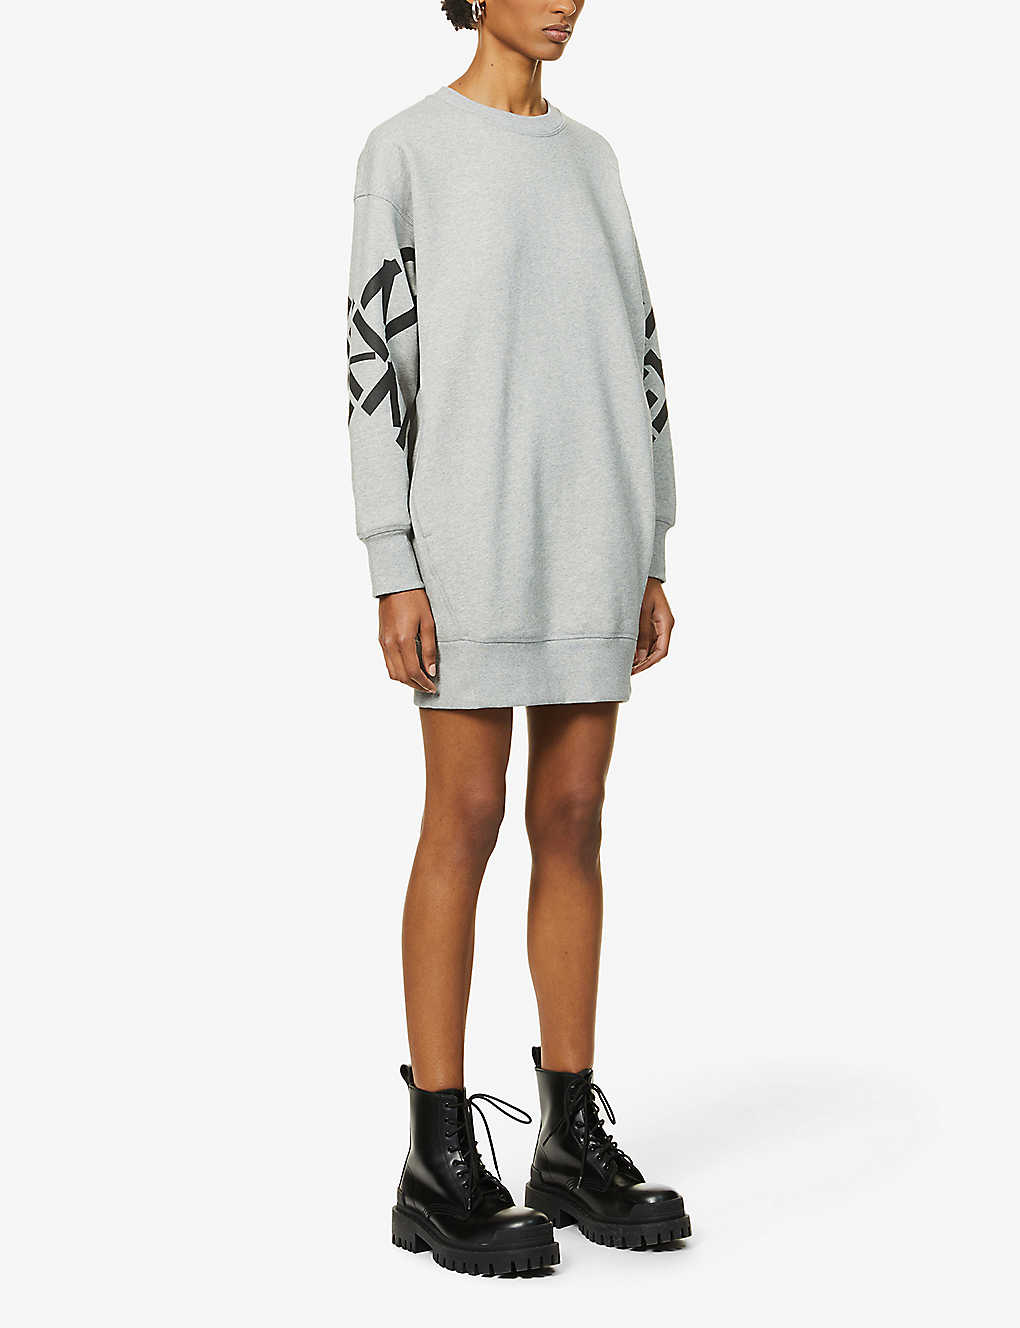 KENZO: Logo-print cotton-blend mini sweatshirt dress